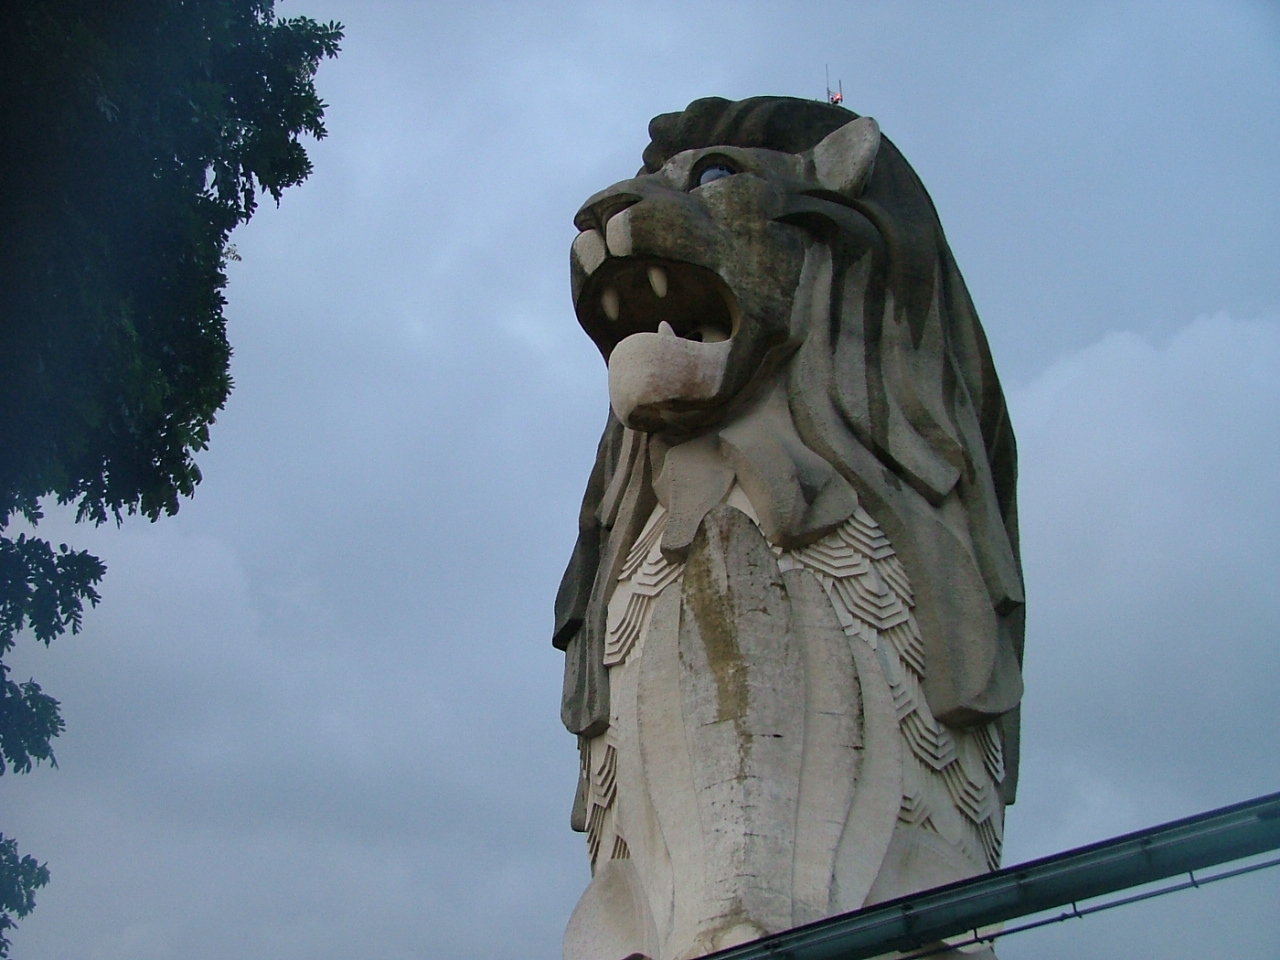 The story of Singapura used to be on display here - Sentosa in 2004